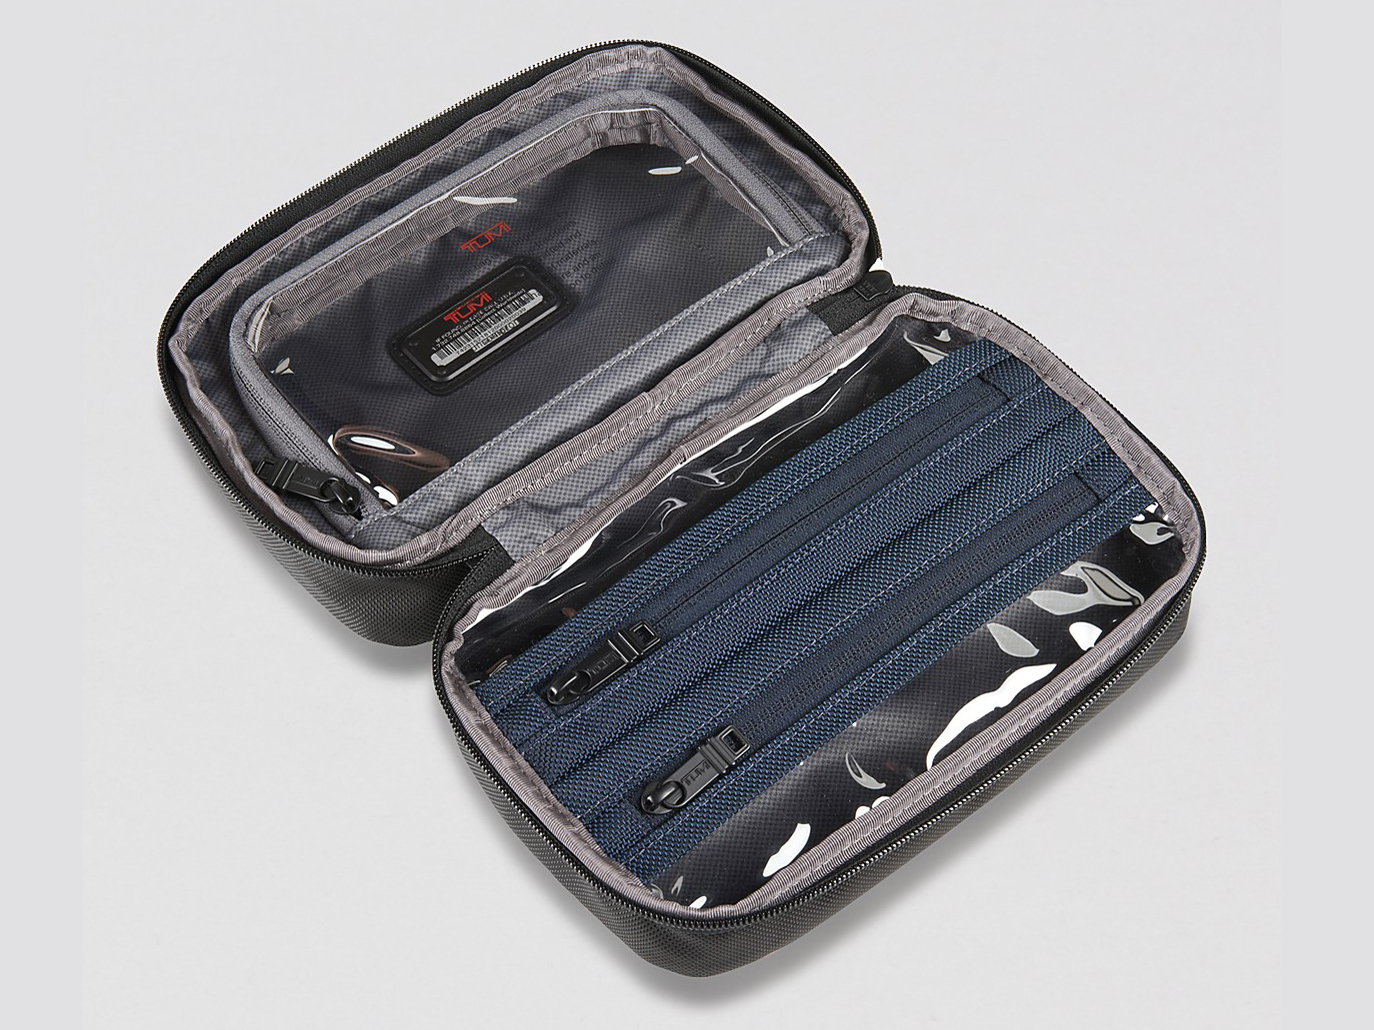 15 Best Toiletry Bags Cases For Your Travel Essentials